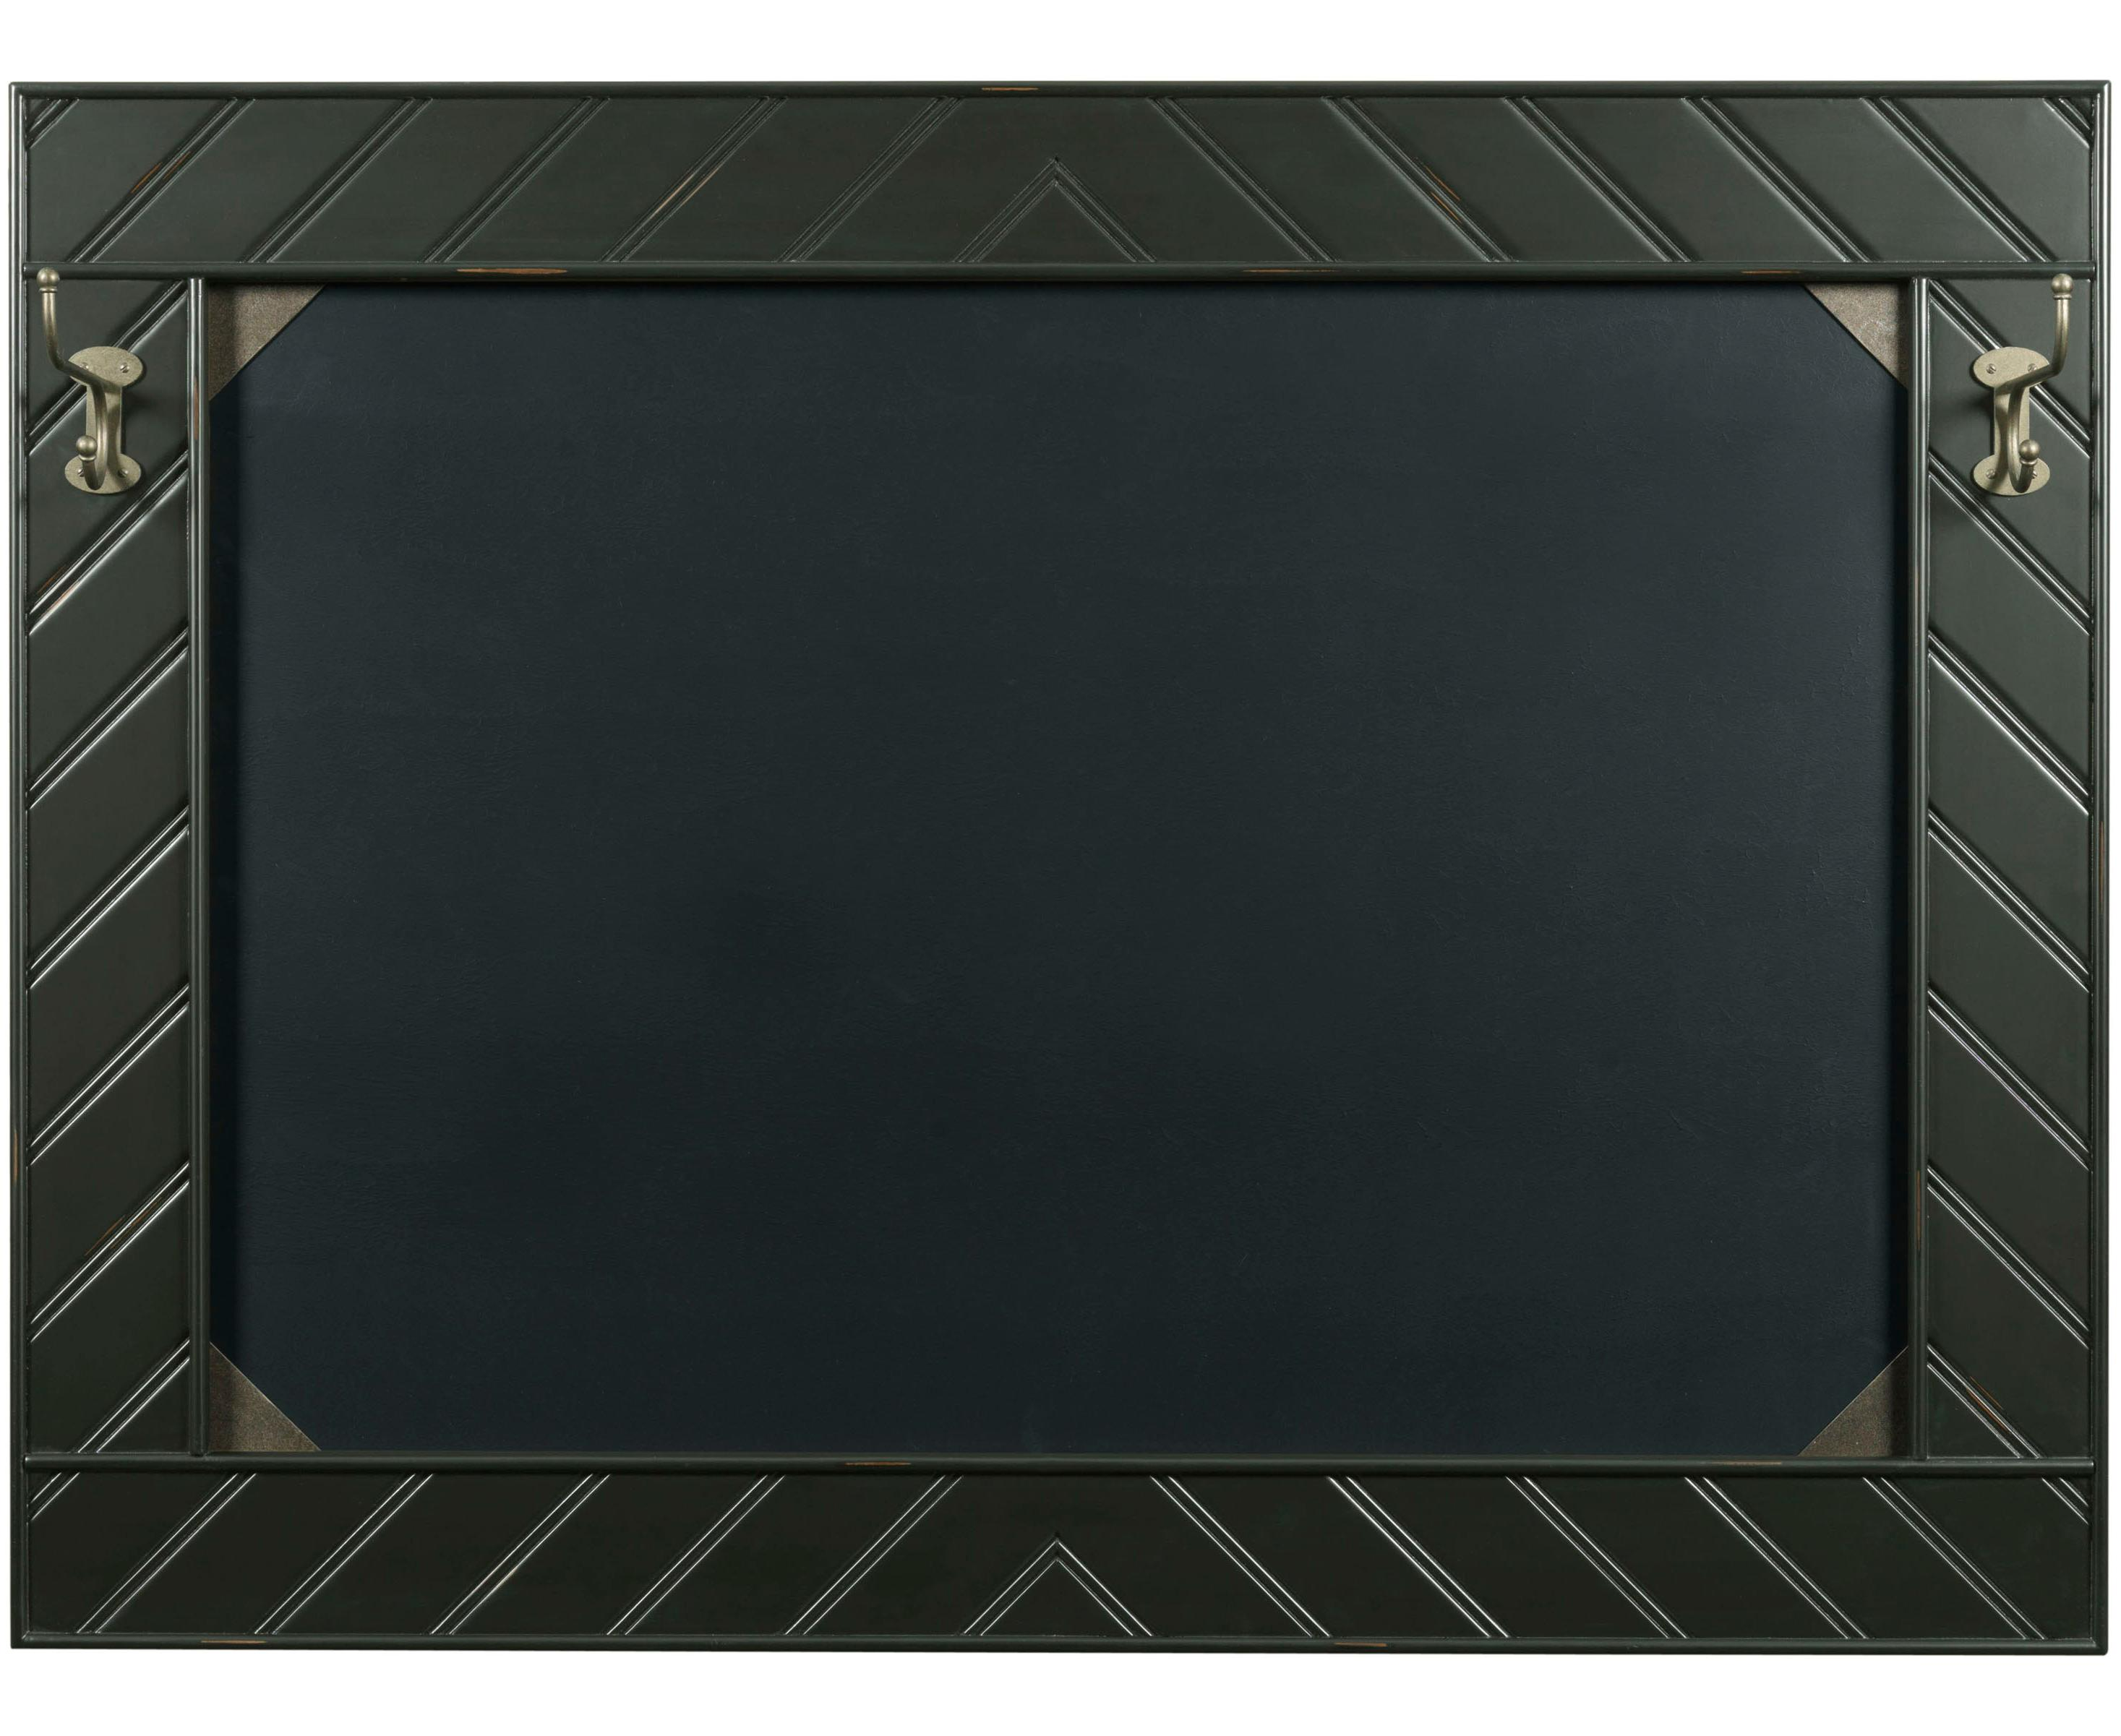 Broyhill Furniture New Vintage Ellen's Chalkboard - Item Number: 4809-010